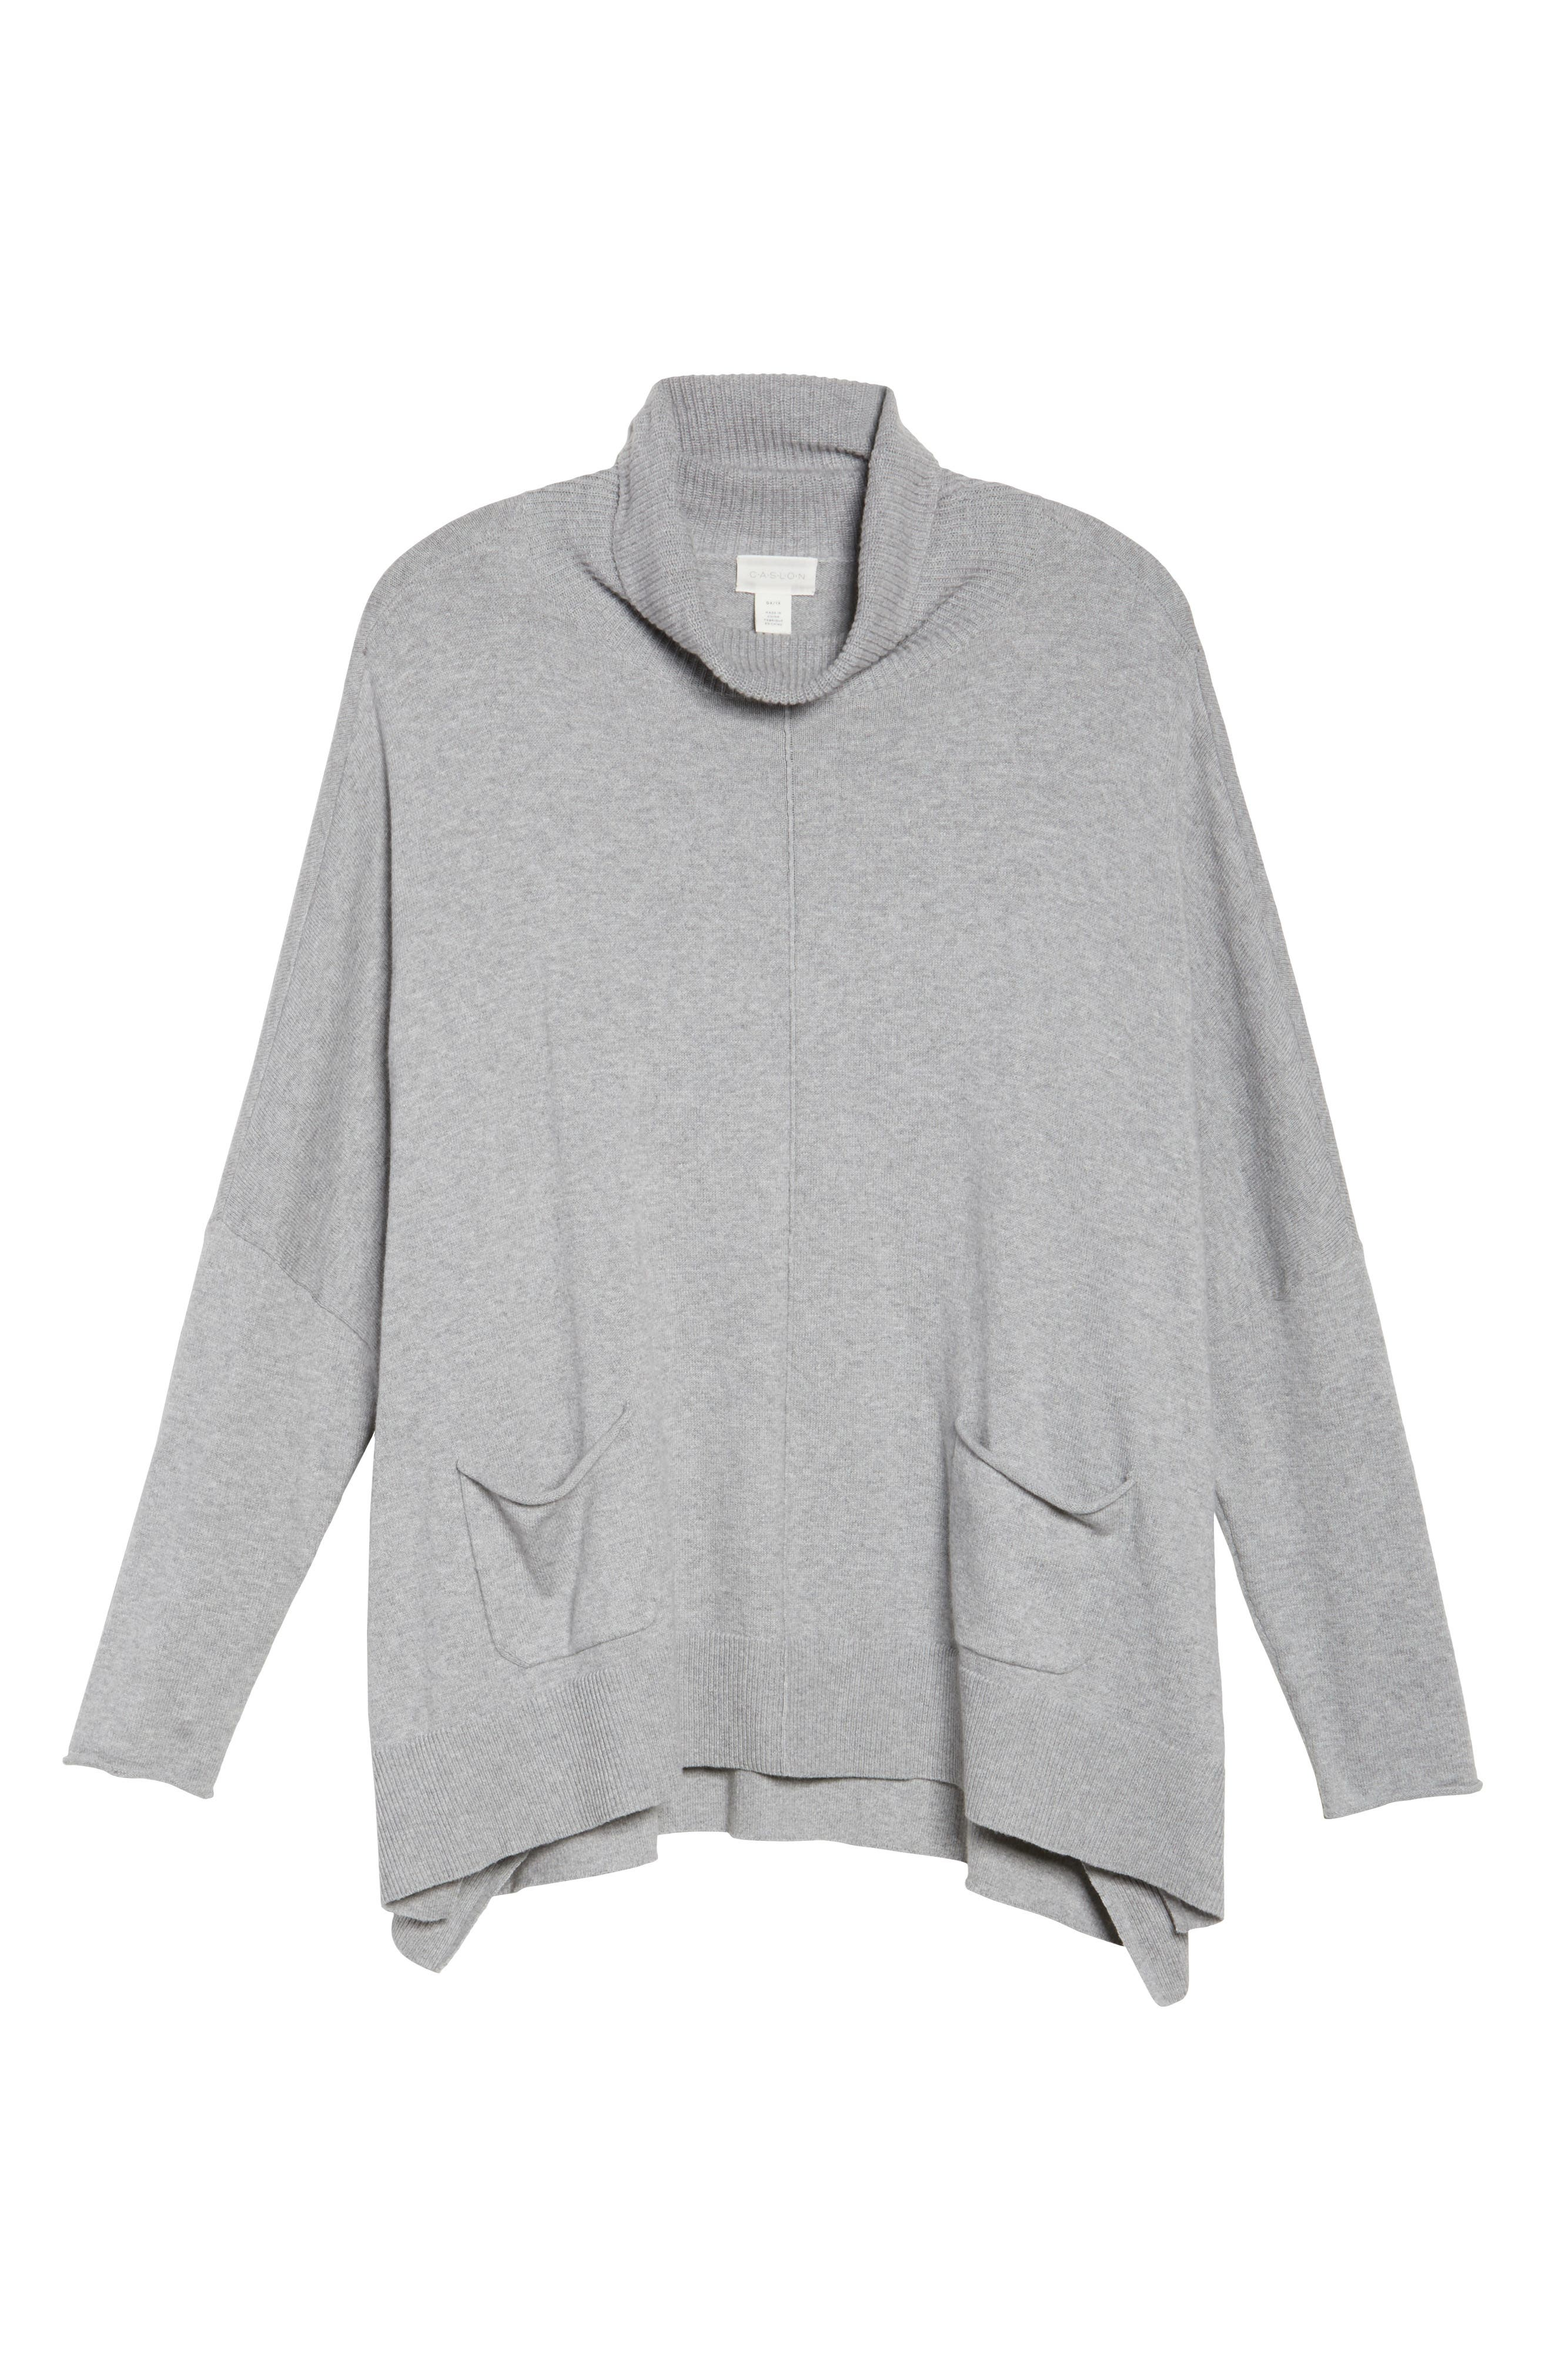 Relaxed Cotton & Cashmere Sweater,                             Alternate thumbnail 22, color,